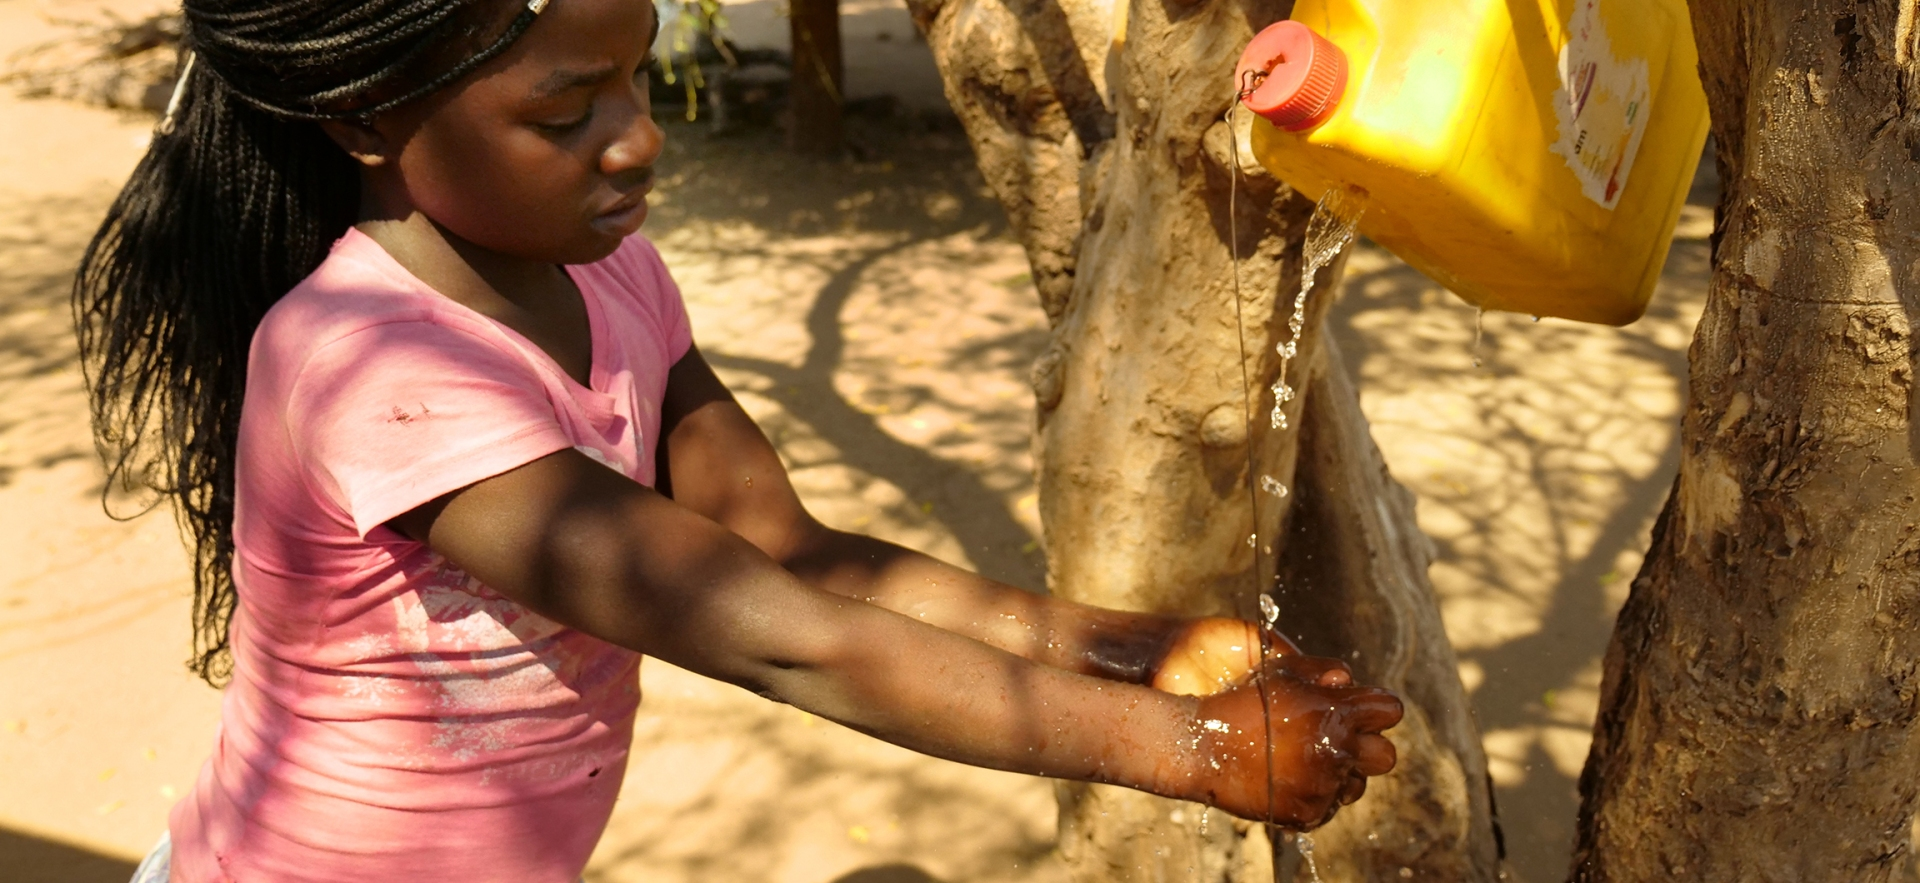 A young girl uses a hands-free device to pour water for washing her hands.